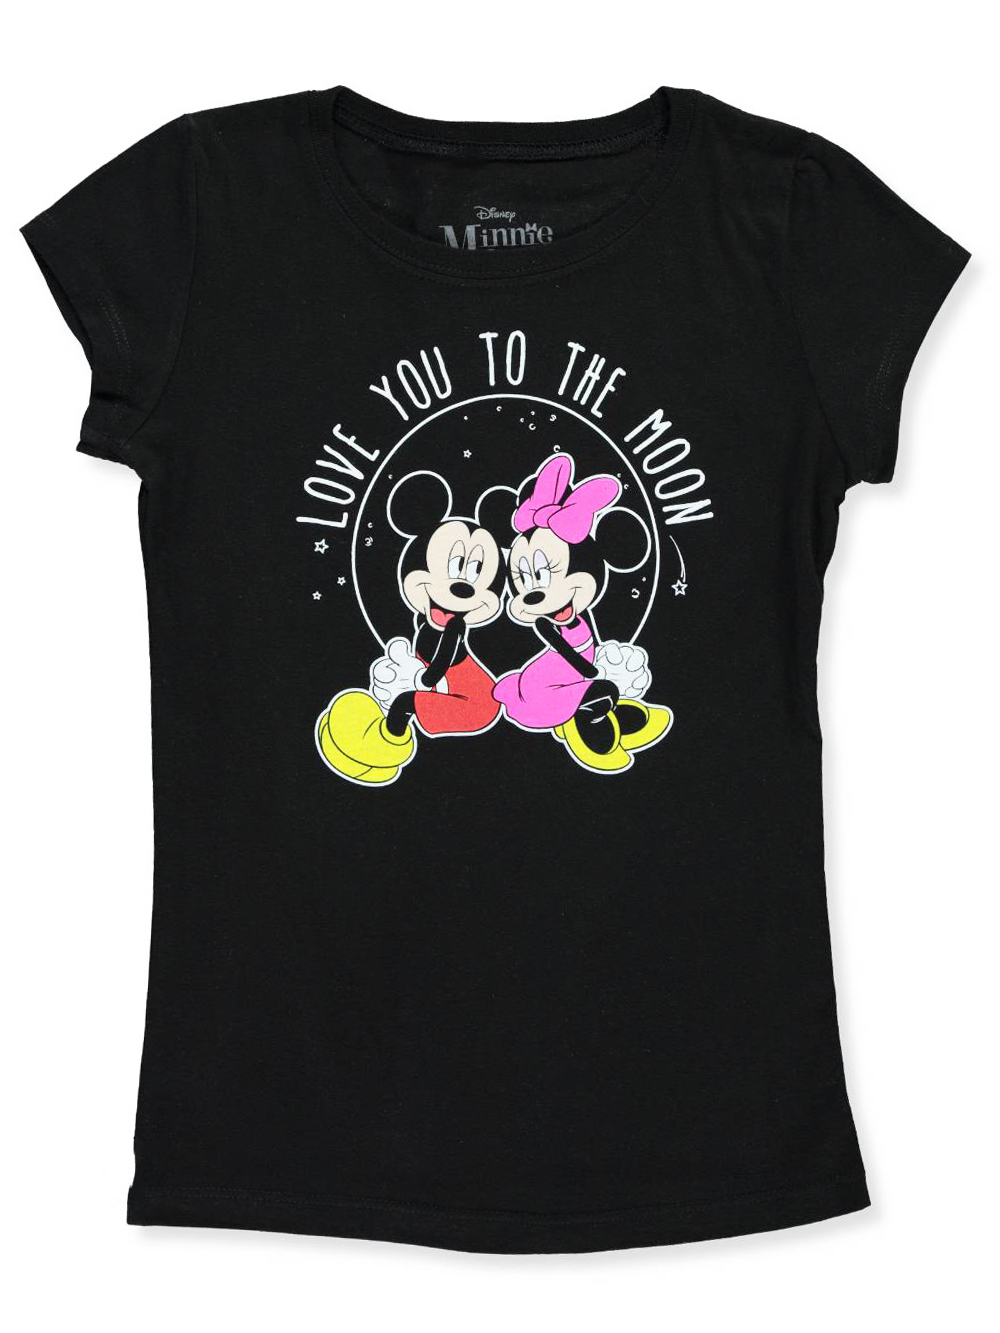 Girls' T-Shirt featuring Minnie & Mickey Mouse